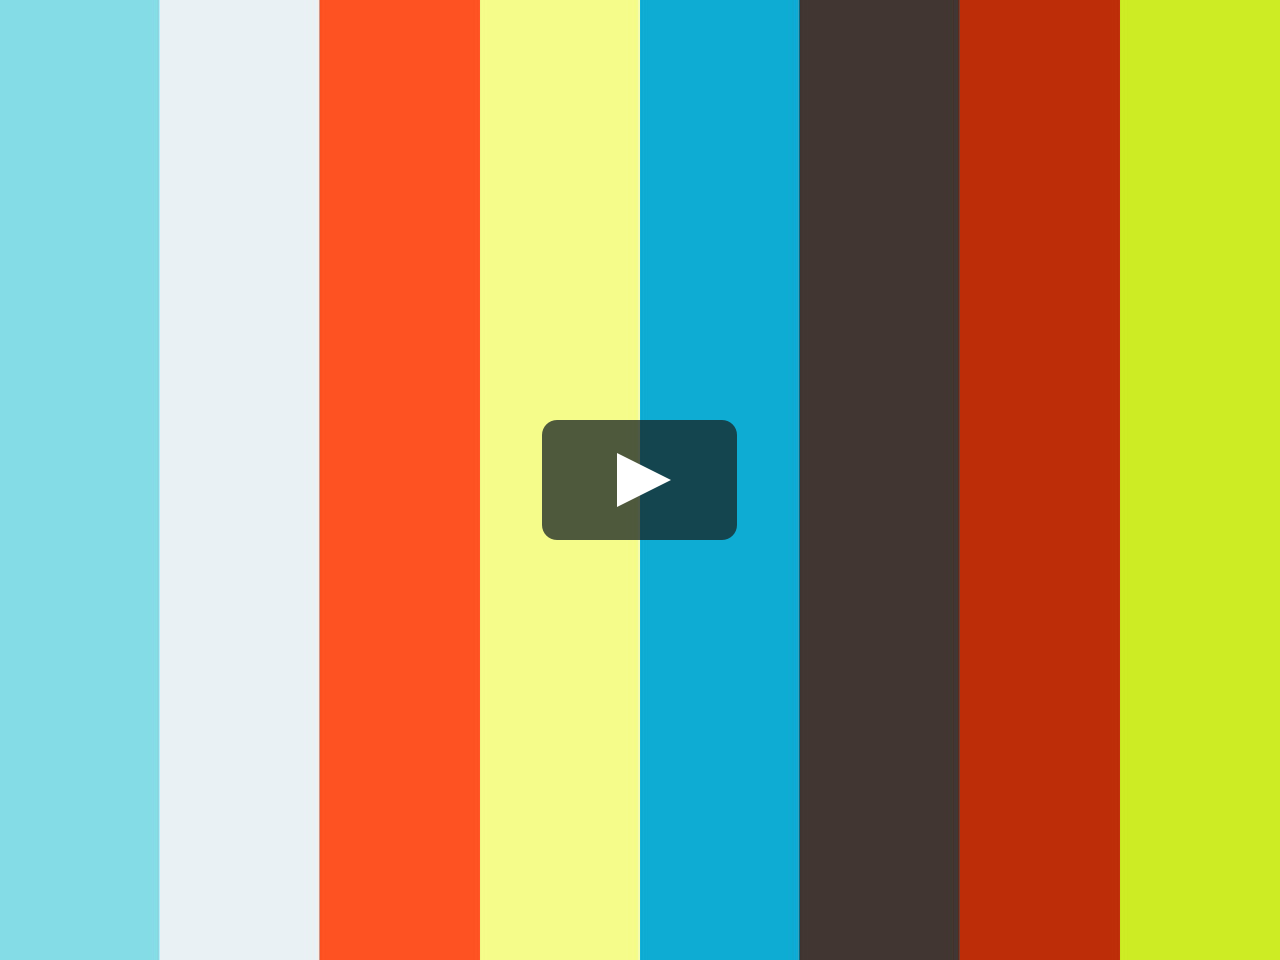 Bypass Immobilizer Service For Toyota 1uz 2uz 3uz Vvti Ecu 2 On 1uzfe Engine Diagram Vimeo